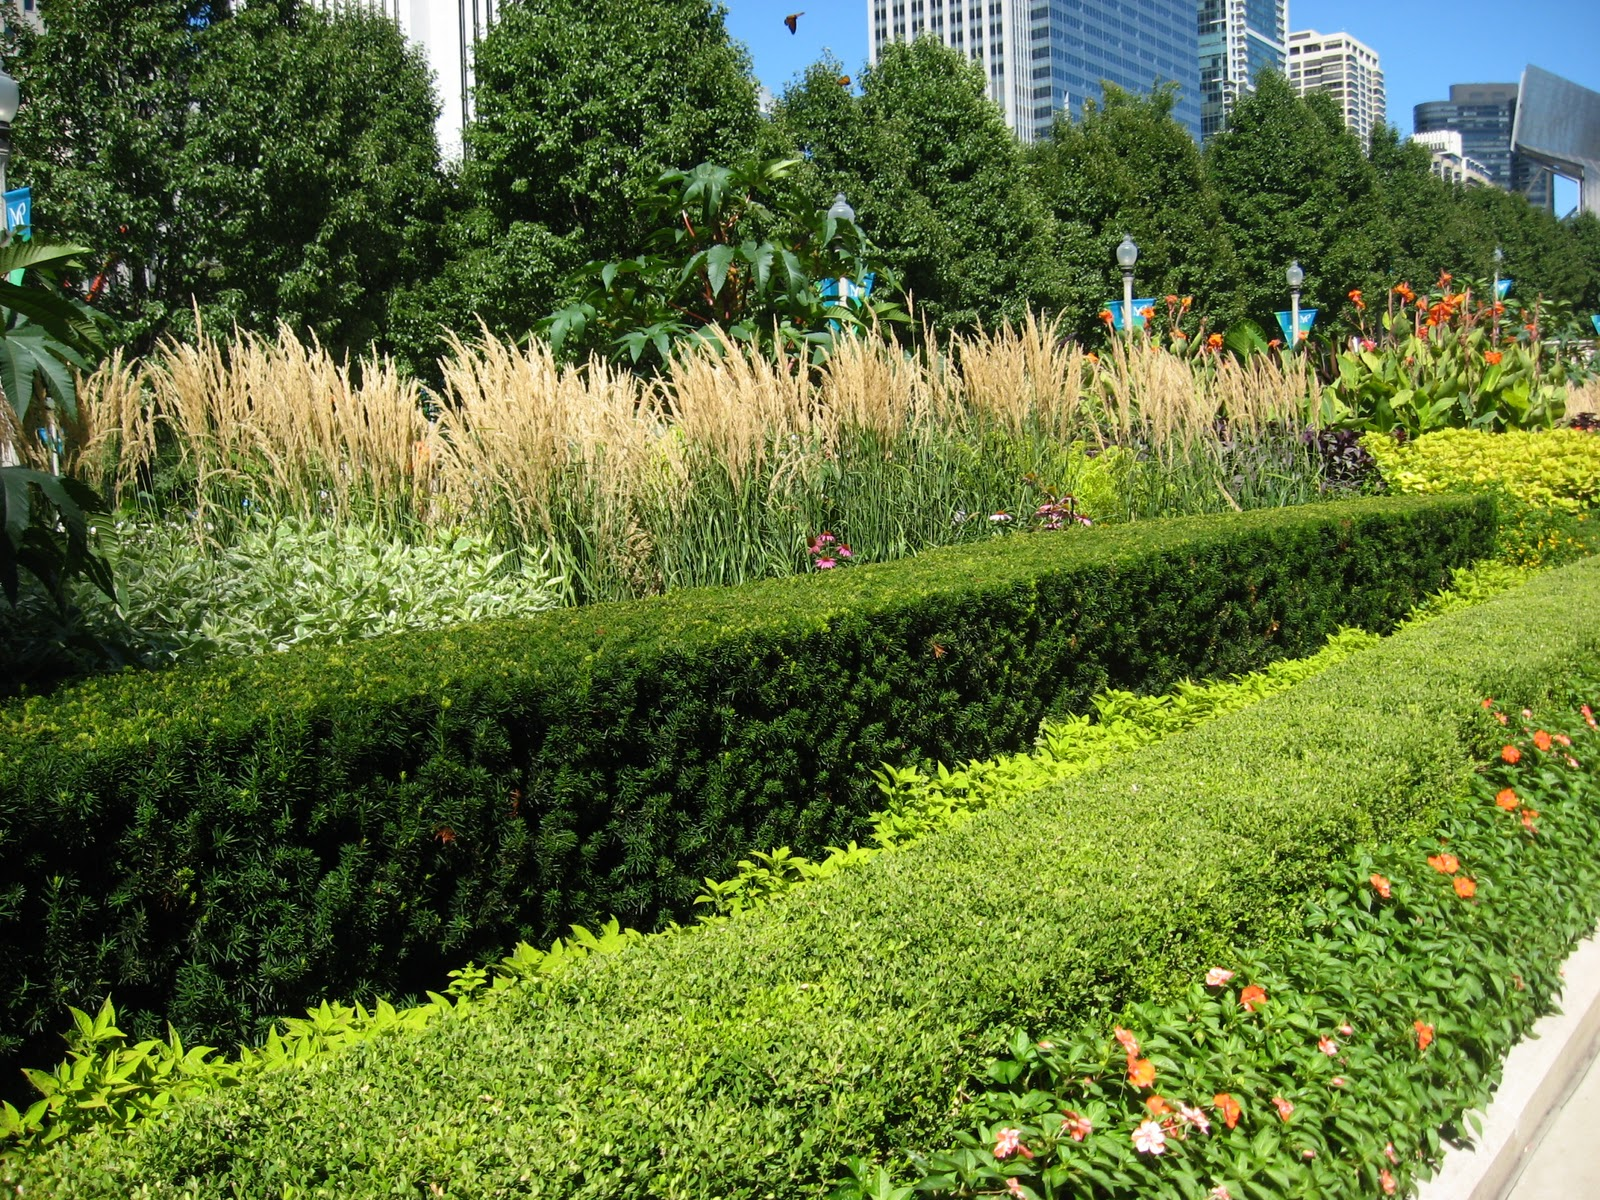 Design Inspiration For The Ornamental Community Garden